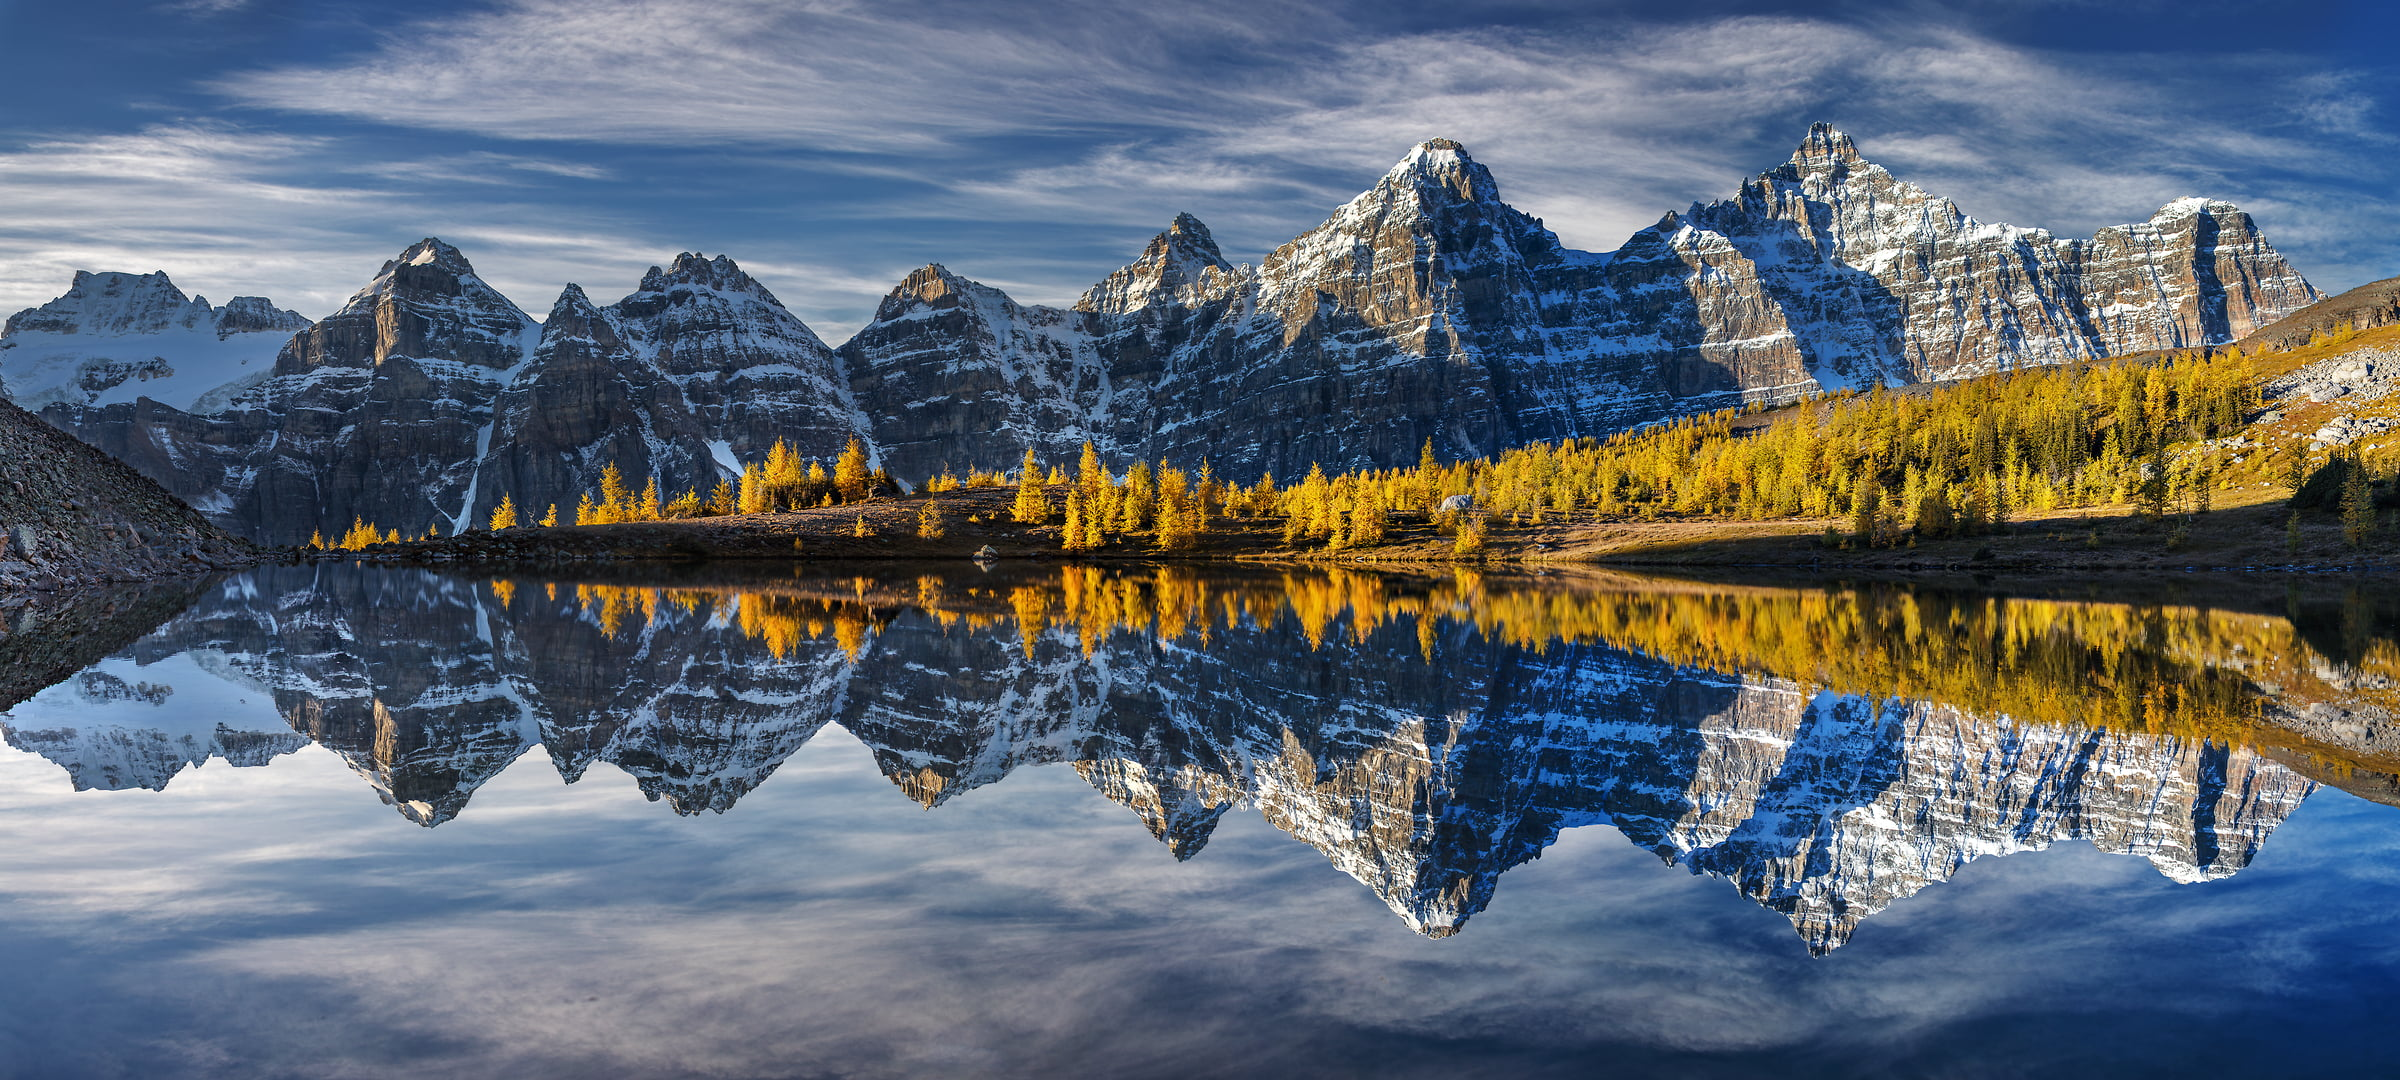 A very high resolution, large-format VAST photo print of mountains, autumn trees, and a lake with reflection; fine art landscape photo created by Chris Collacott in Banff National Park, Alberta, Canada